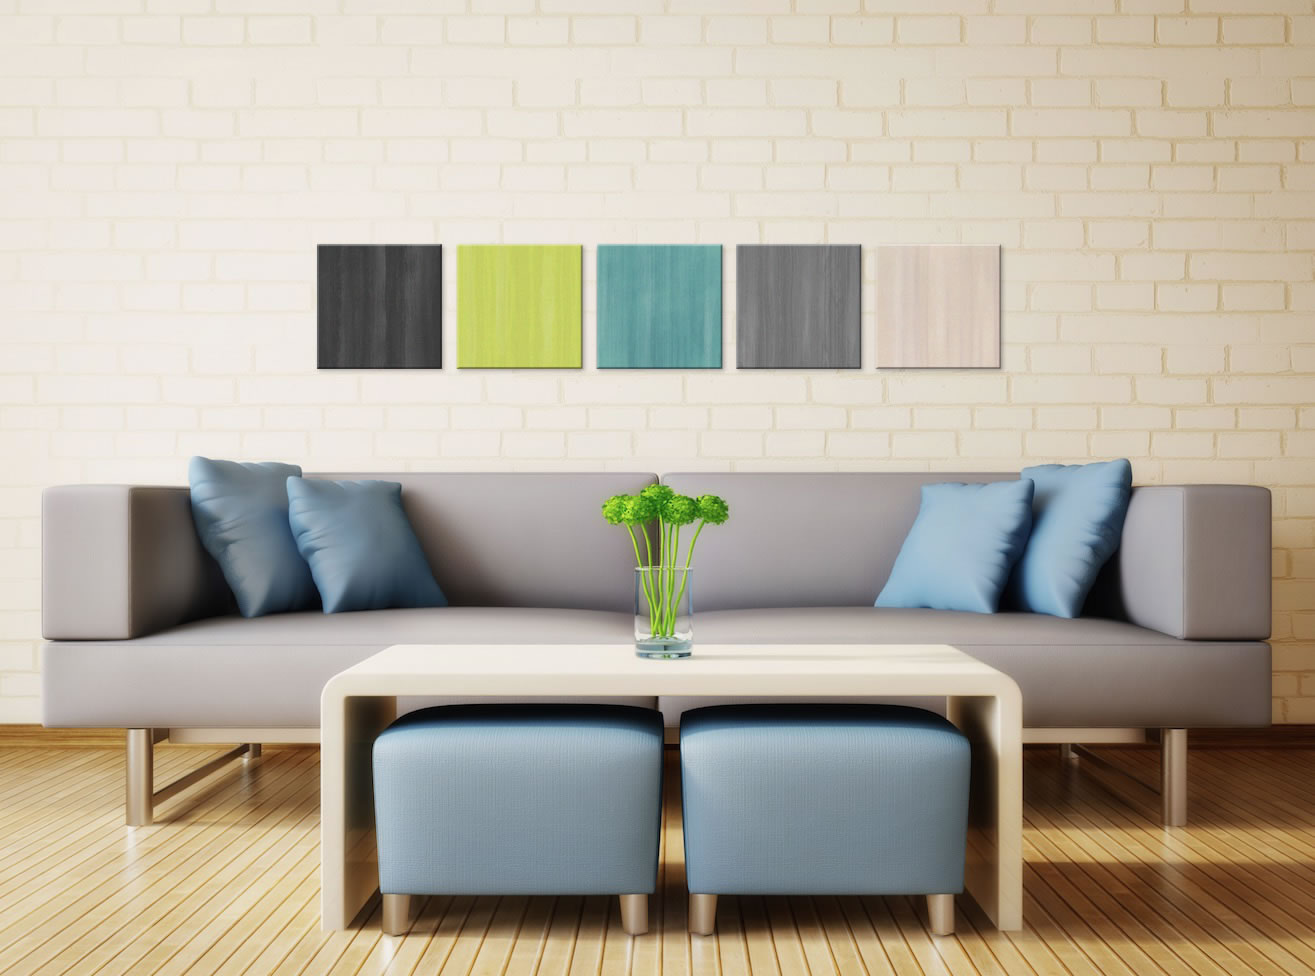 Natural Balance - Colorful Contemporary Accents by Celeste Reiter - Lifestyle Image